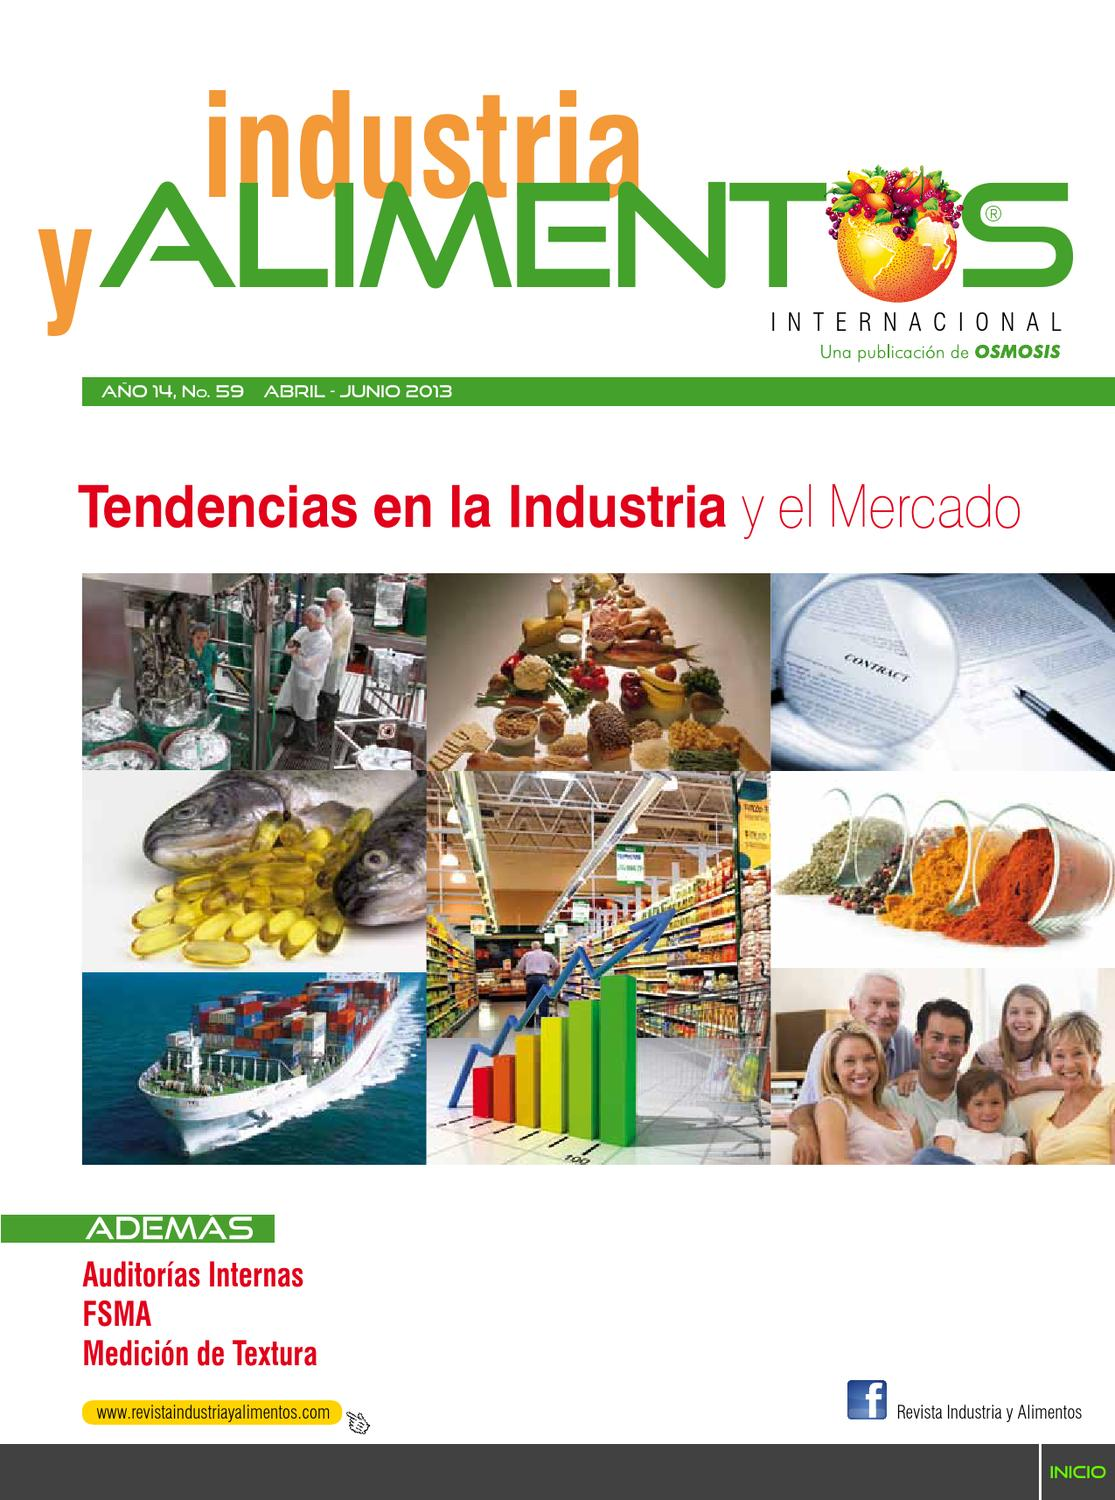 Revista industria y alimentos 59 by revista industria y for Manual de limpieza y desinfeccion en industria alimentaria